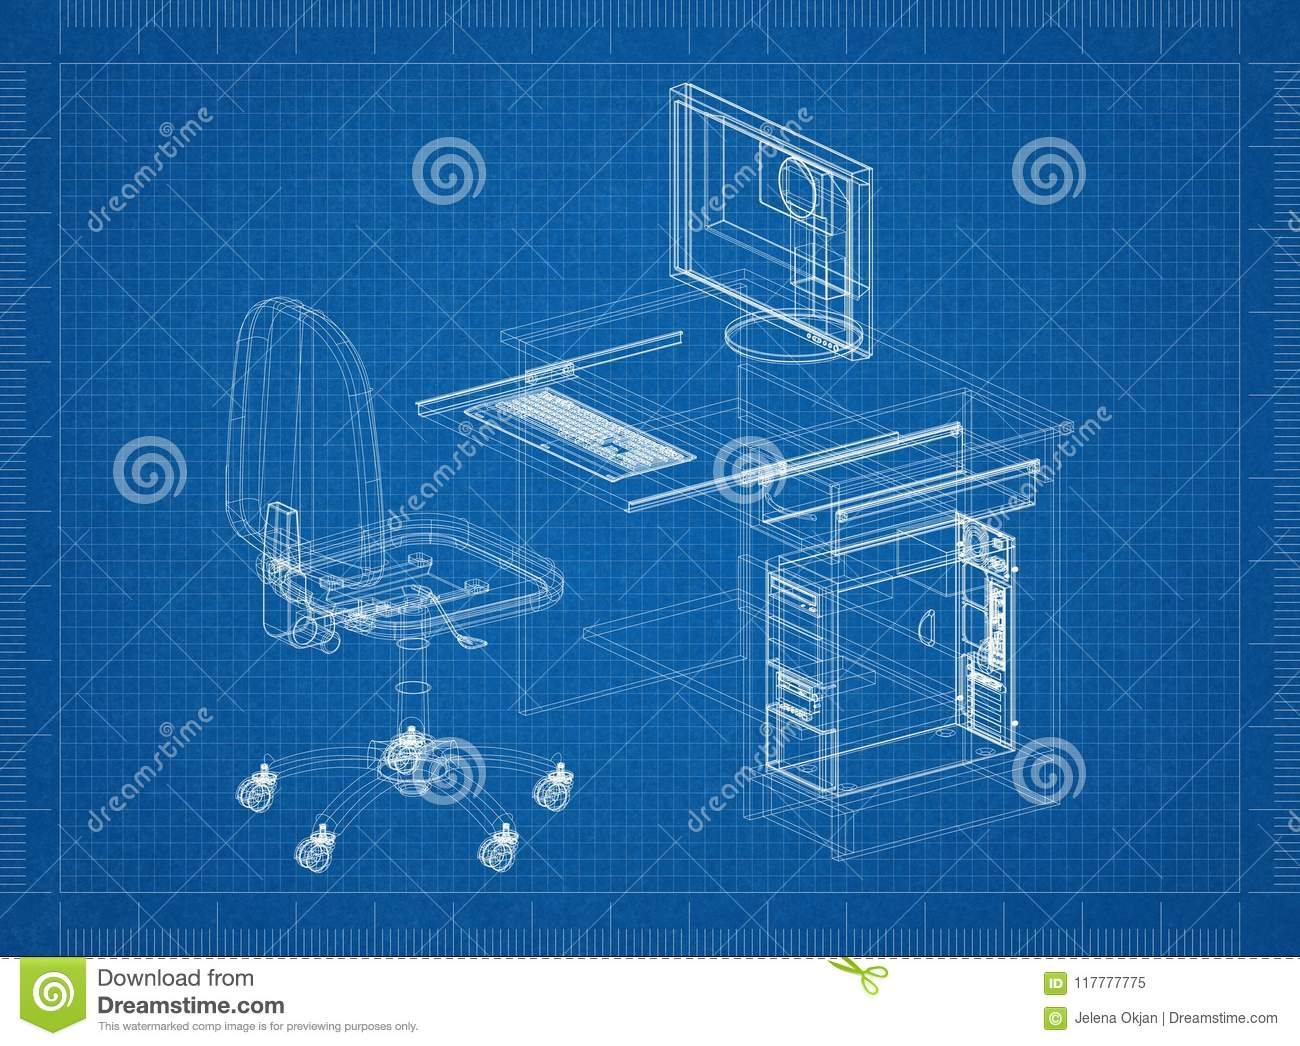 Office desk with computer architect blueprint stock illustration download office desk with computer architect blueprint stock illustration illustration of background paper malvernweather Images